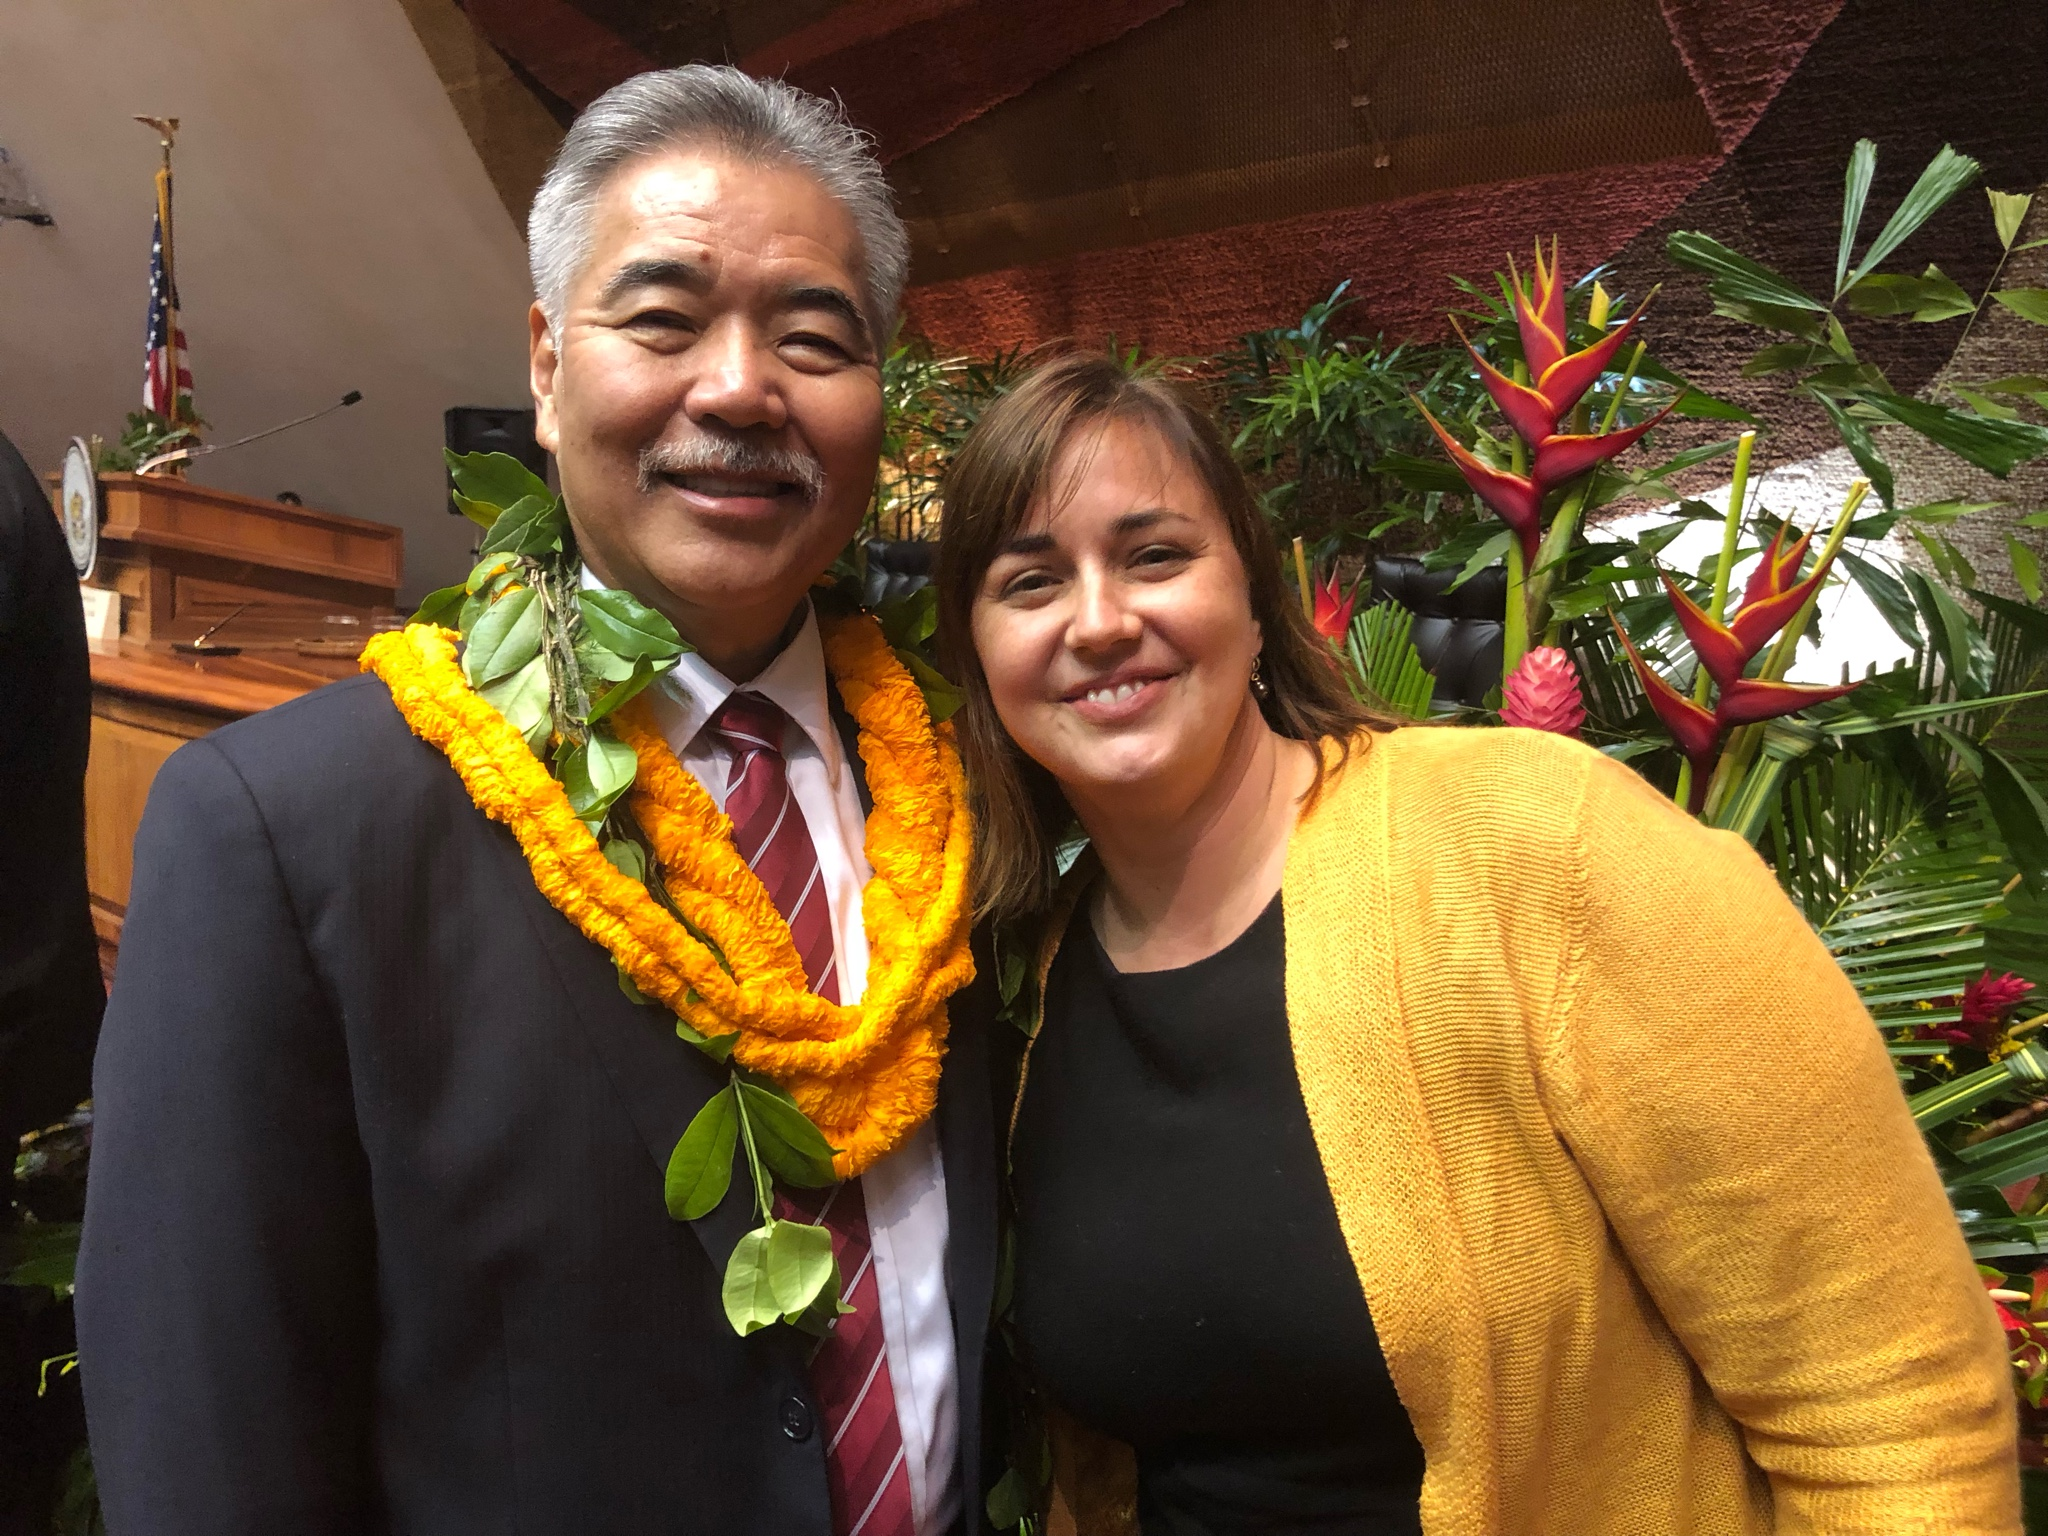 Governor David Ige and Marti townsend, sierra club of hawaiʻi director